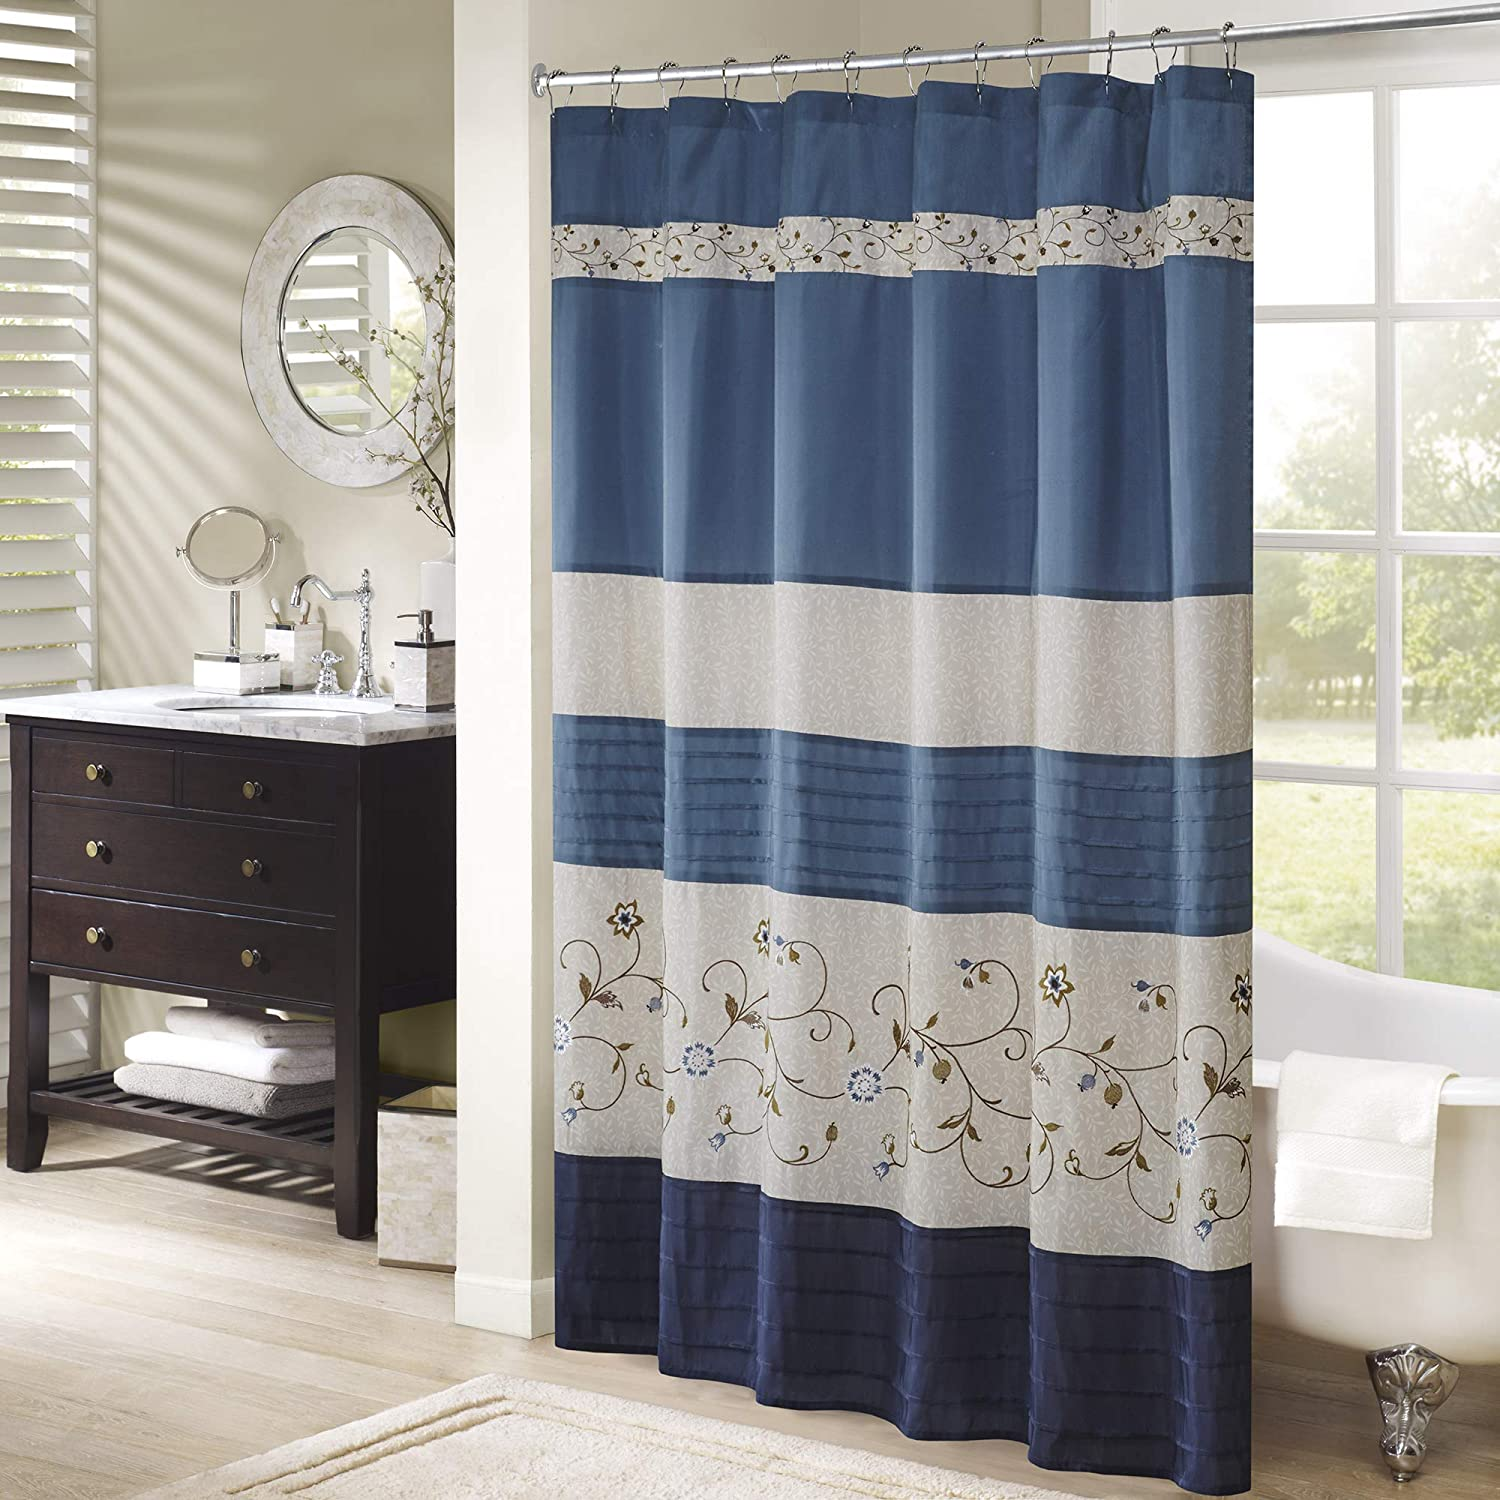 Madison Park Serene Flora Fabric Shower Curtain, mbroidered Transitional Shower Curtains for Bathroom, 72 X 72, Red E&E Co. Ltd DBA JLA Home MP70-644